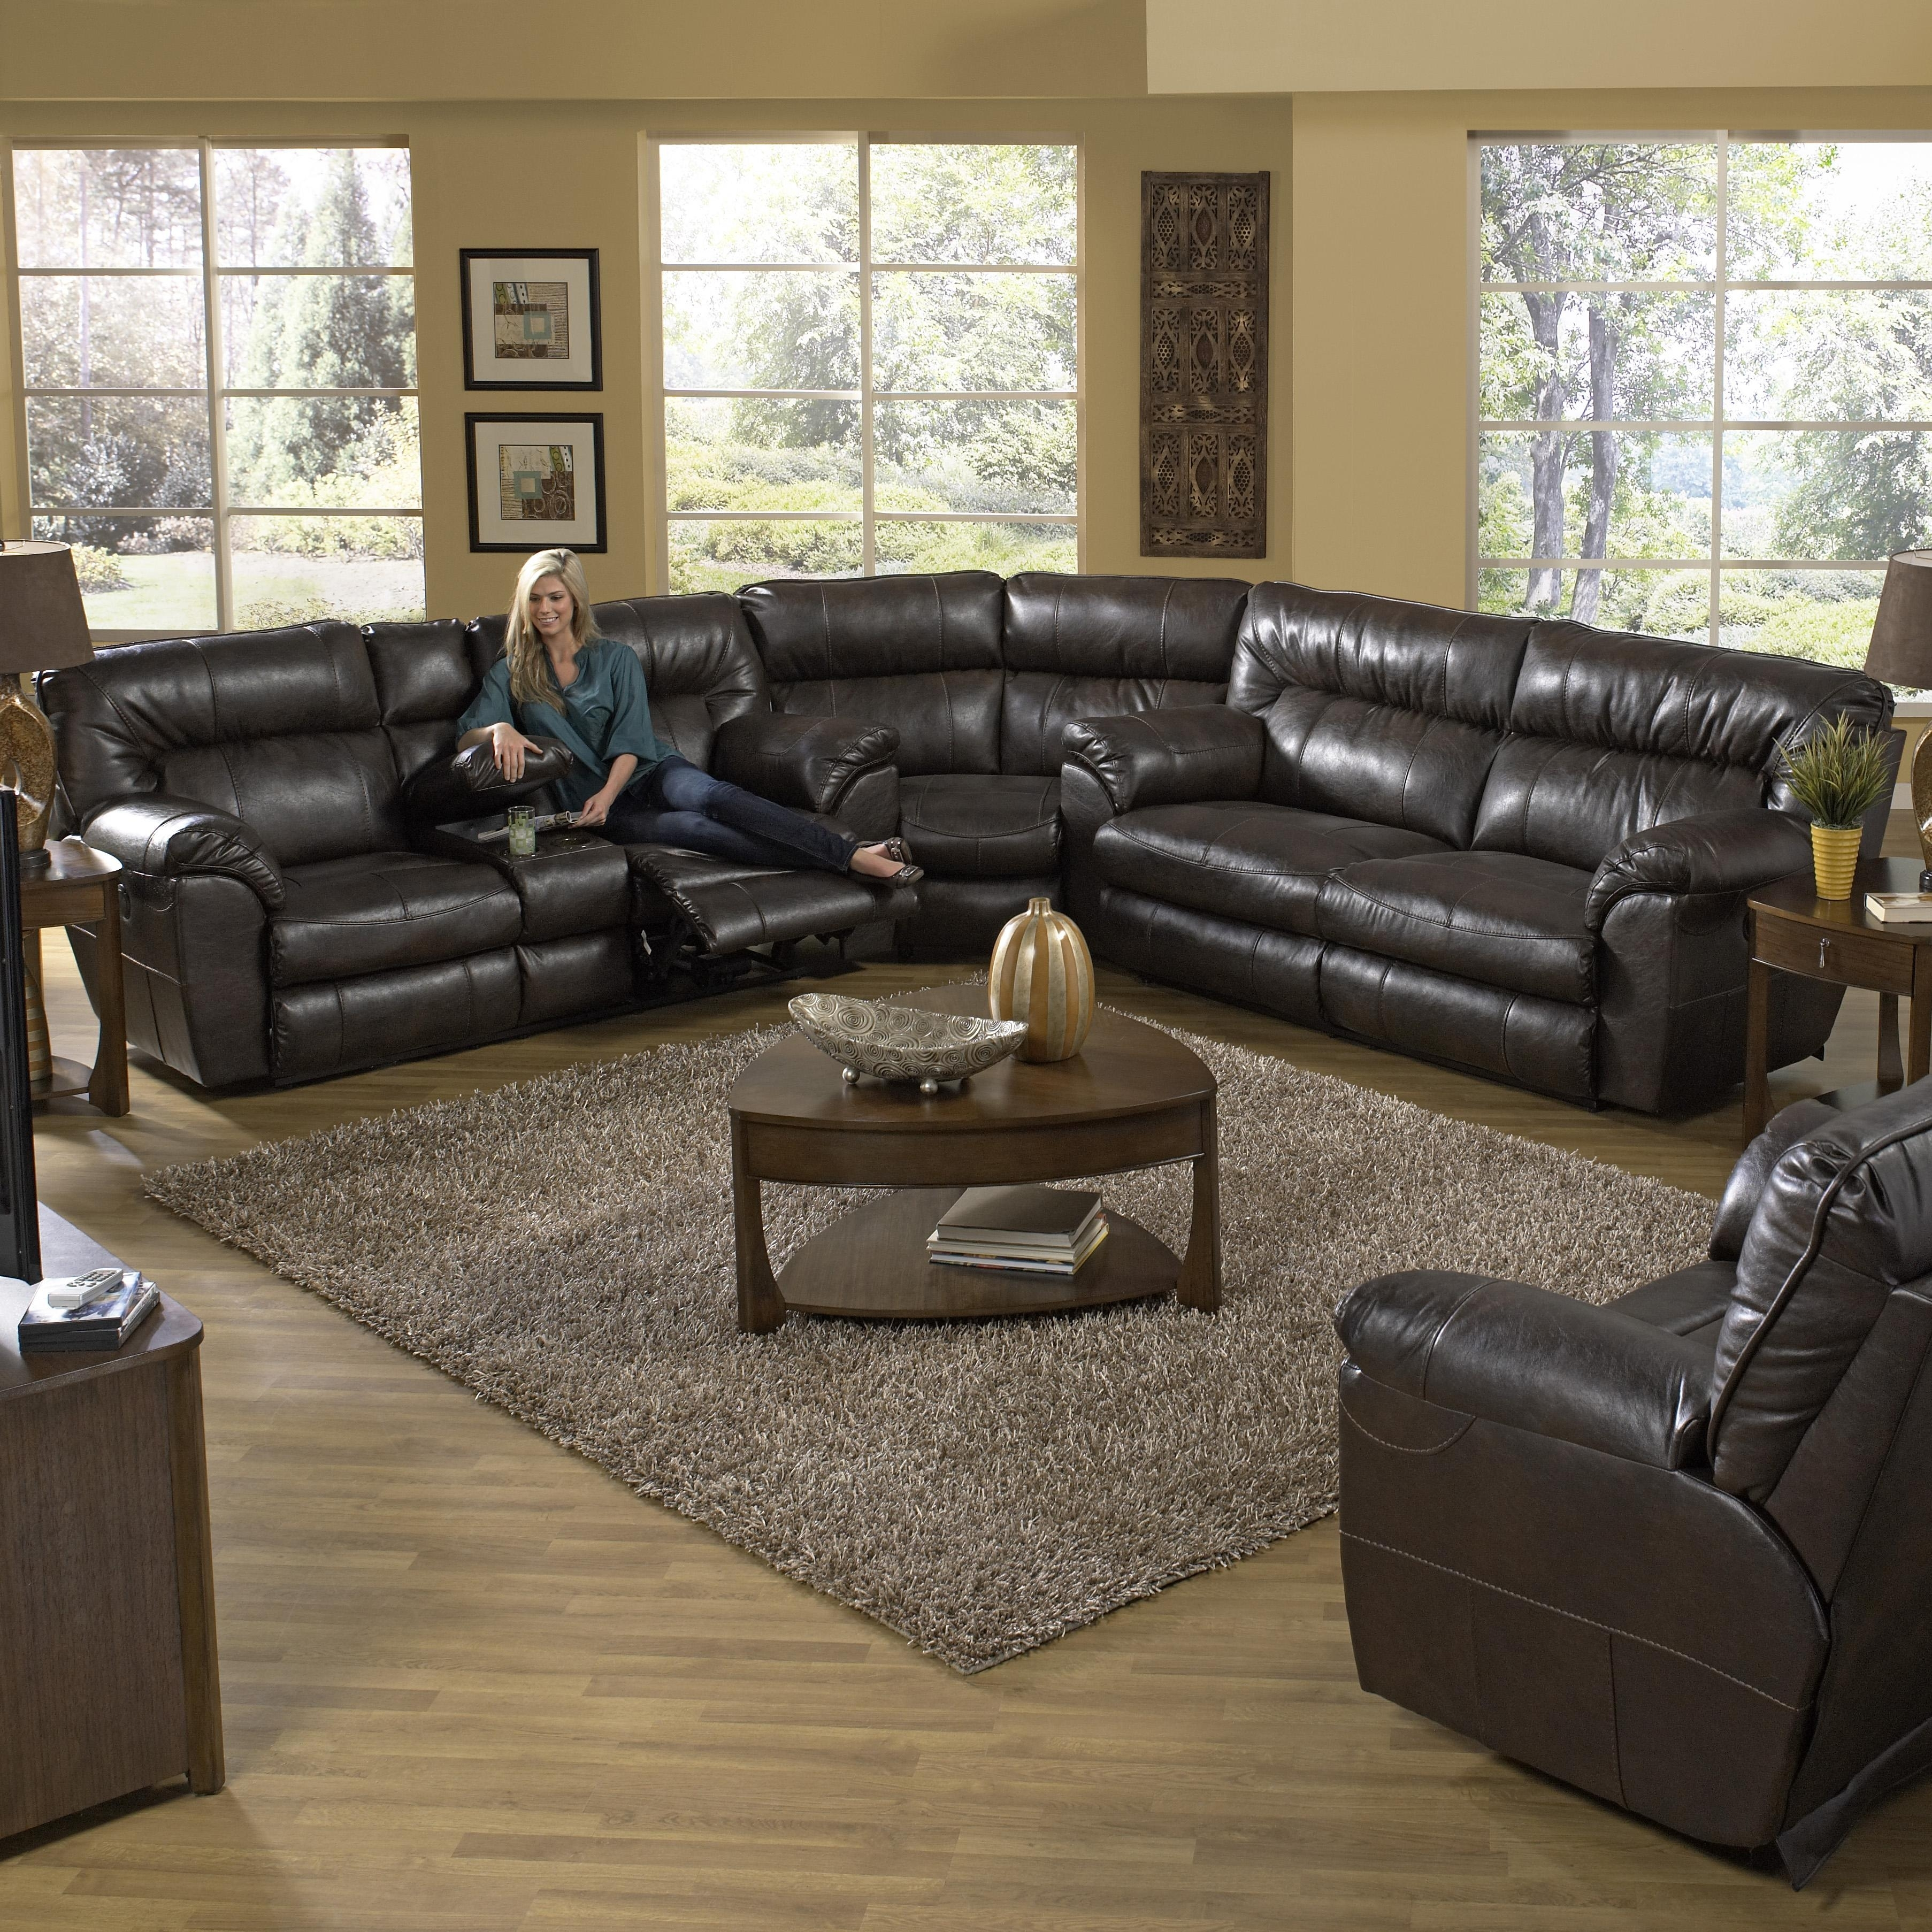 Catnapper Nolan Reclining Sectional Sofa With Left Console intended for Jacksonville Nc Sectional Sofas (Image 2 of 10)